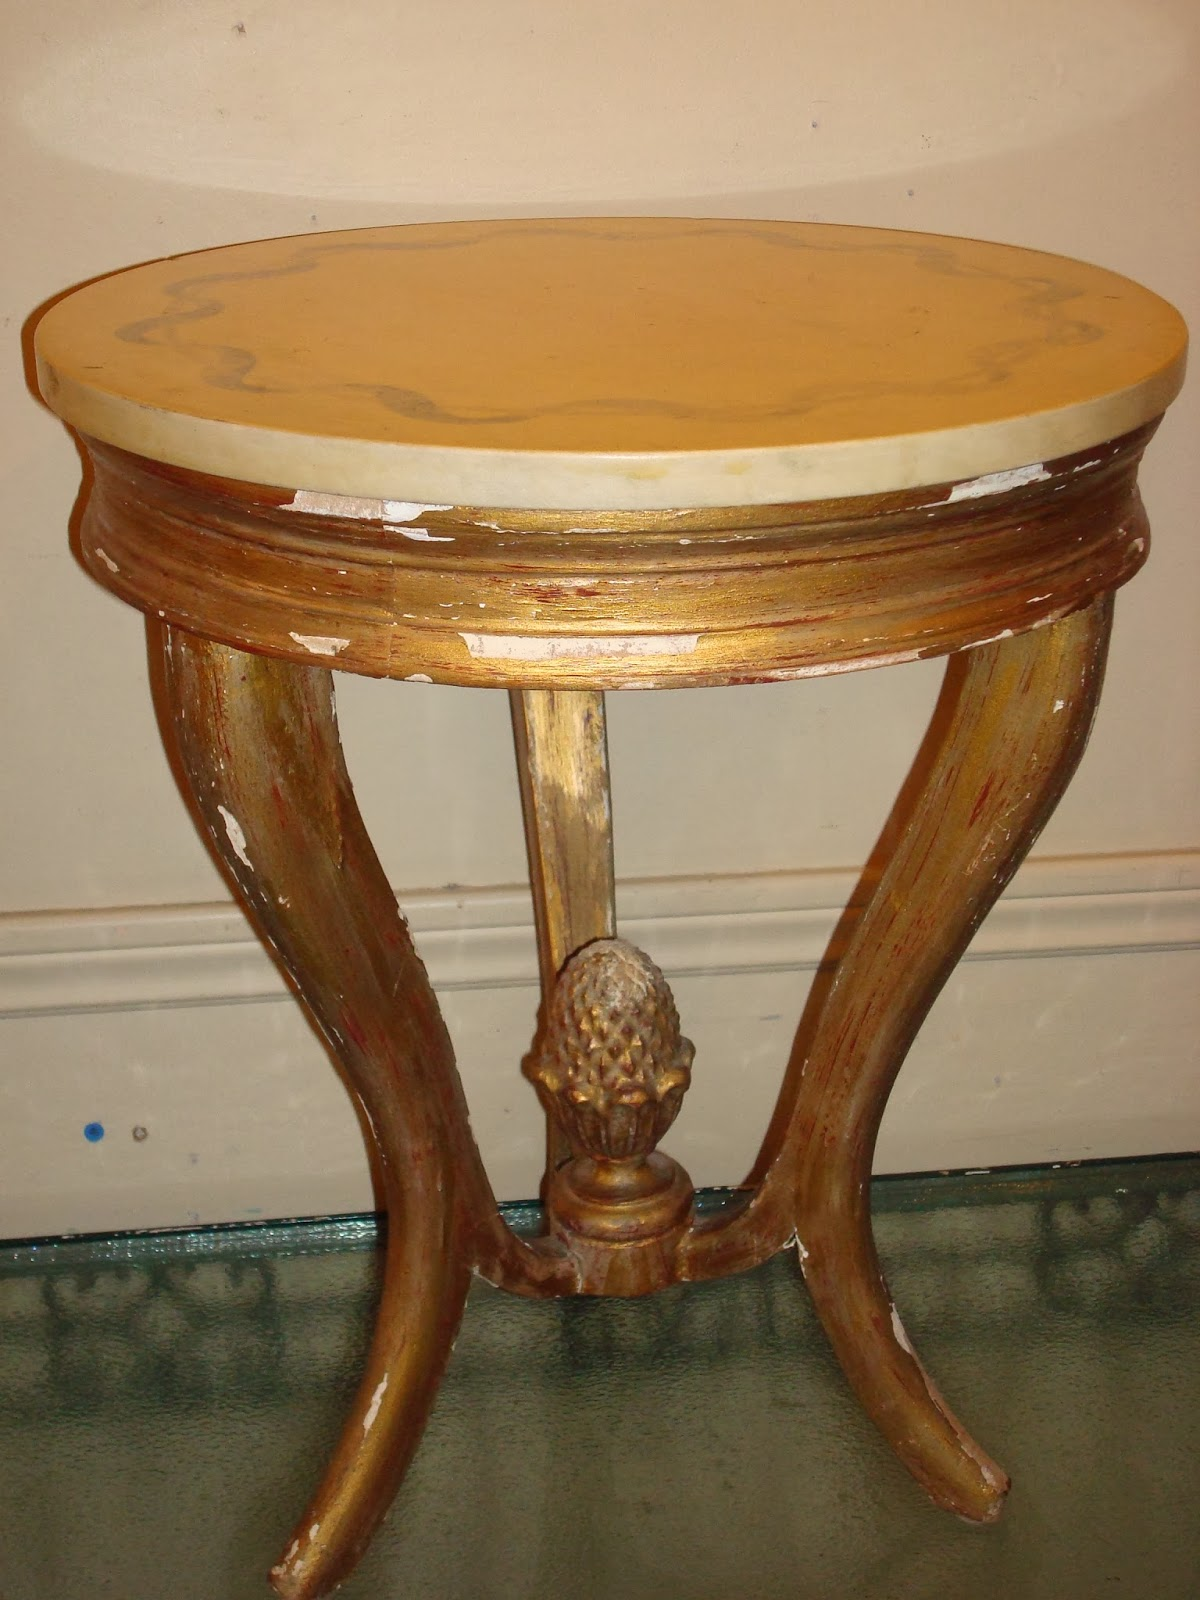 Era antiques vintage gilt wood round side table with a yellow marble